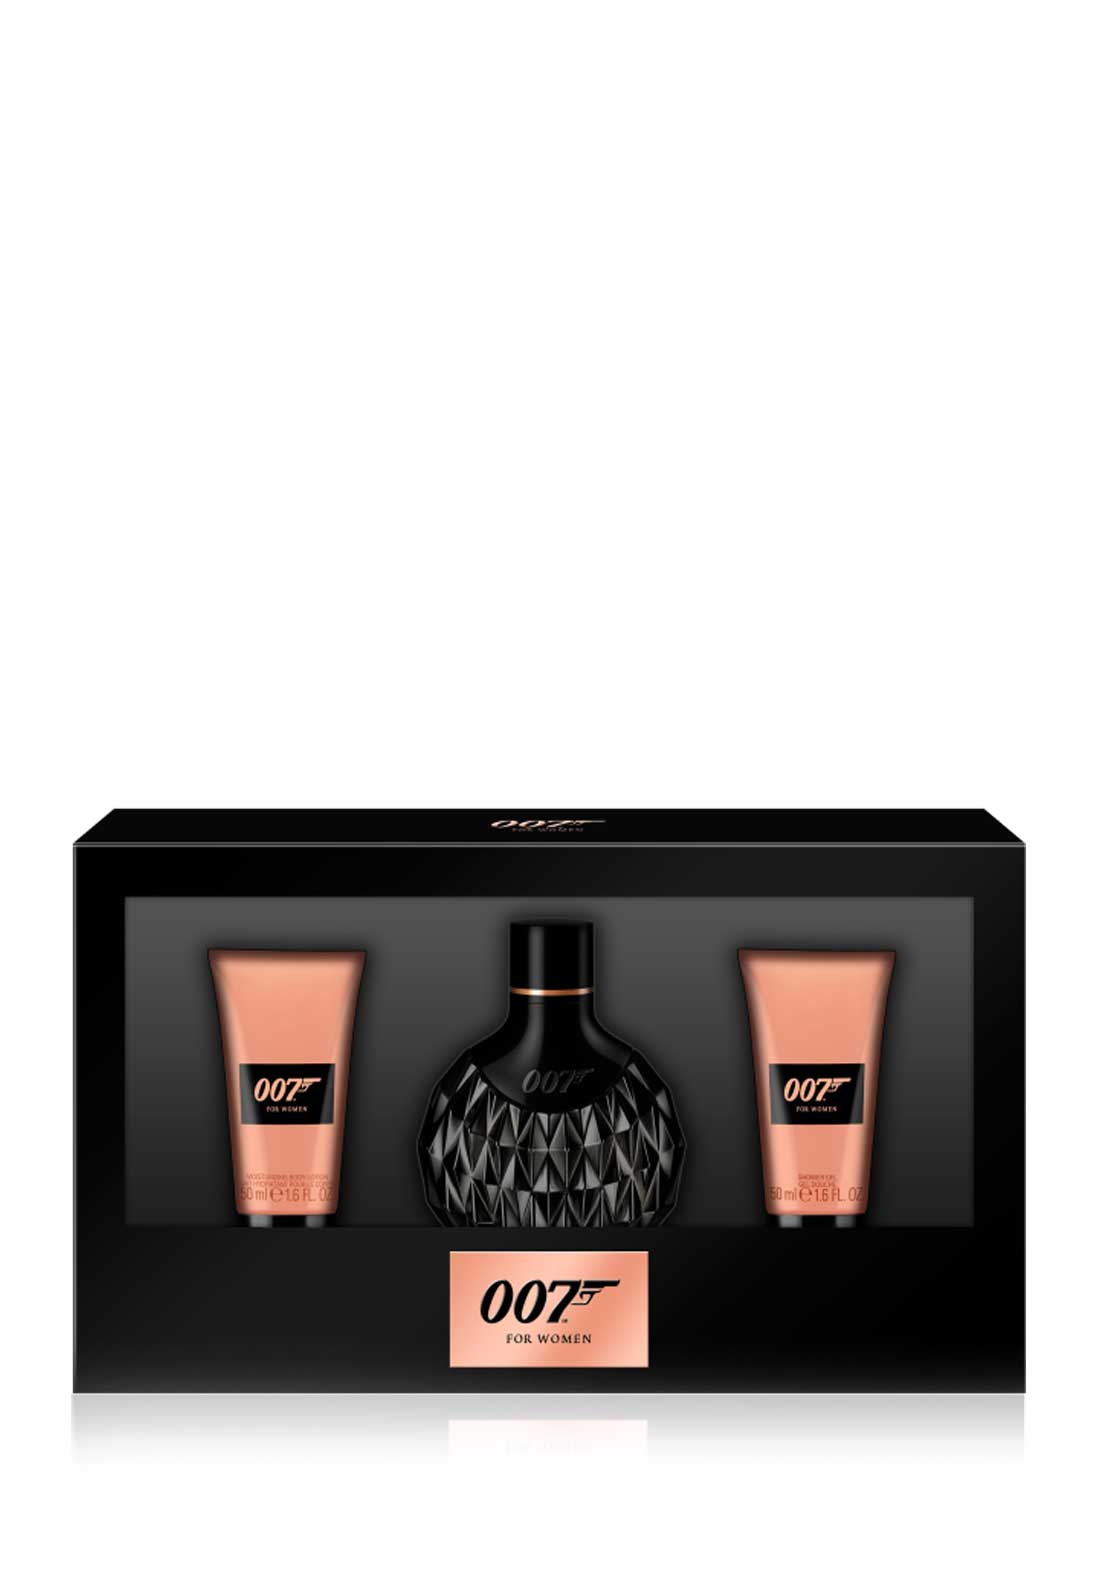 007 for Women Gift Set, 50ml